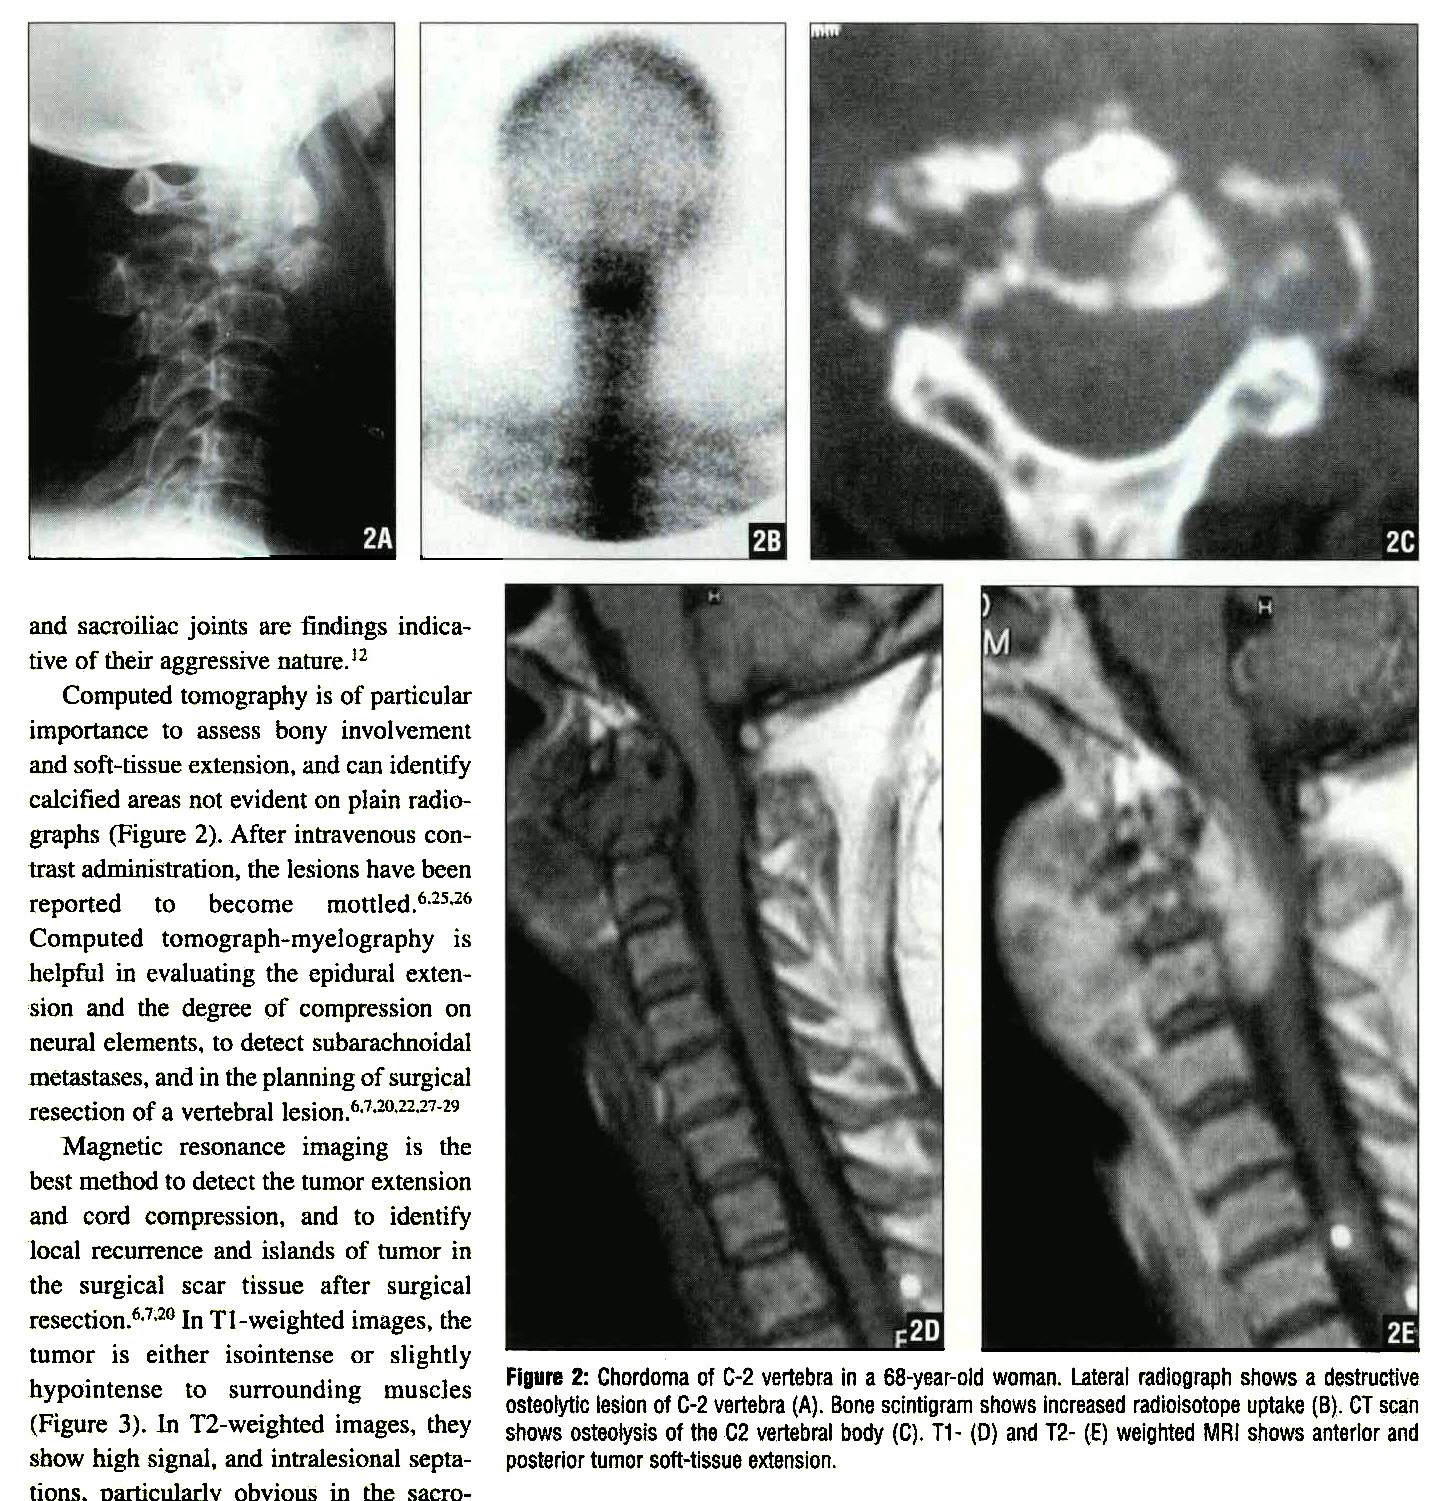 Figure 2: Ghordoma of C-2 vertebra in a 68-year-old woman. Lateral radiograph shows a destructive osteotytic lesion of C-2 vertebra (A). Bone scintigram shows increased radioisotope uptake (B). CT scan shows osteotysis of the C2 vertebral body (C). T1- (O) and T2- (C) weighted MRI shows anterior and posterior tumor soft-tissue extension.